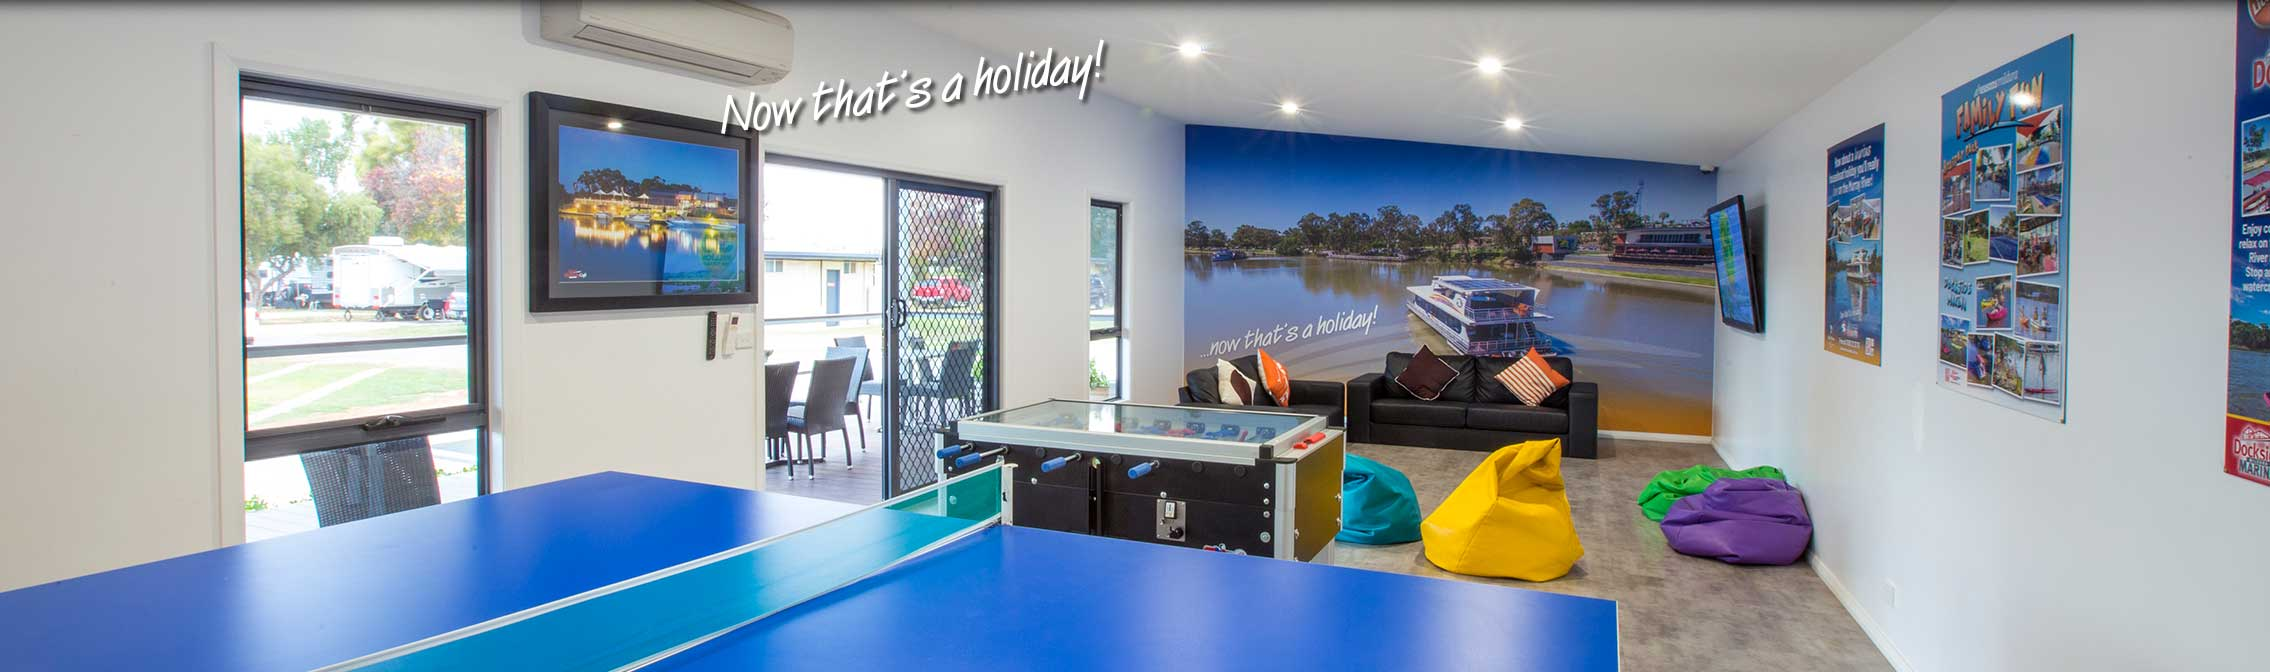 All Seasons Holiday Park Games Room